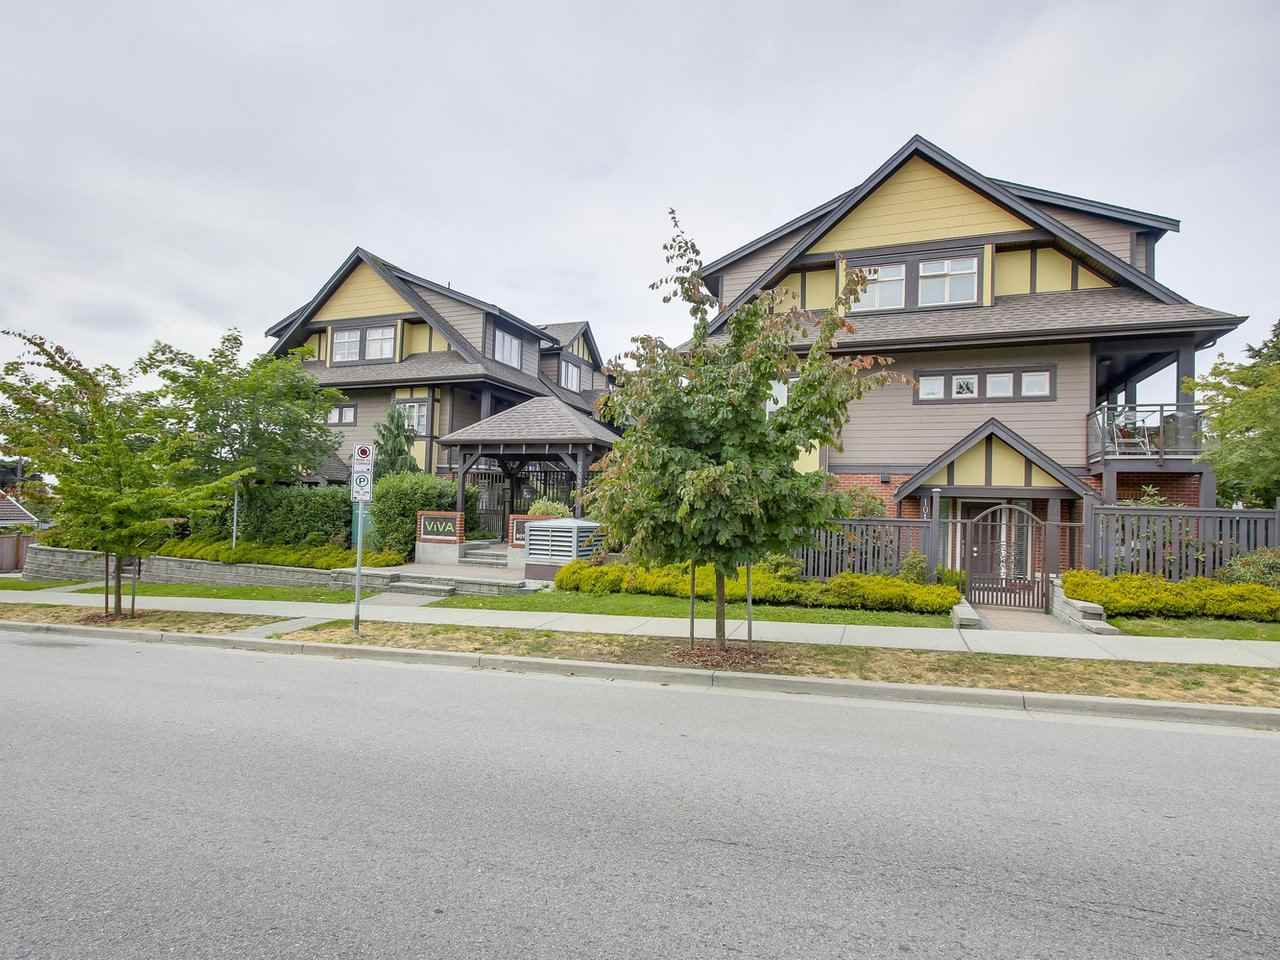 Main Photo: 106 7227 ROYAL OAK Avenue in Burnaby: Metrotown Townhouse for sale (Burnaby South)  : MLS® # R2198783